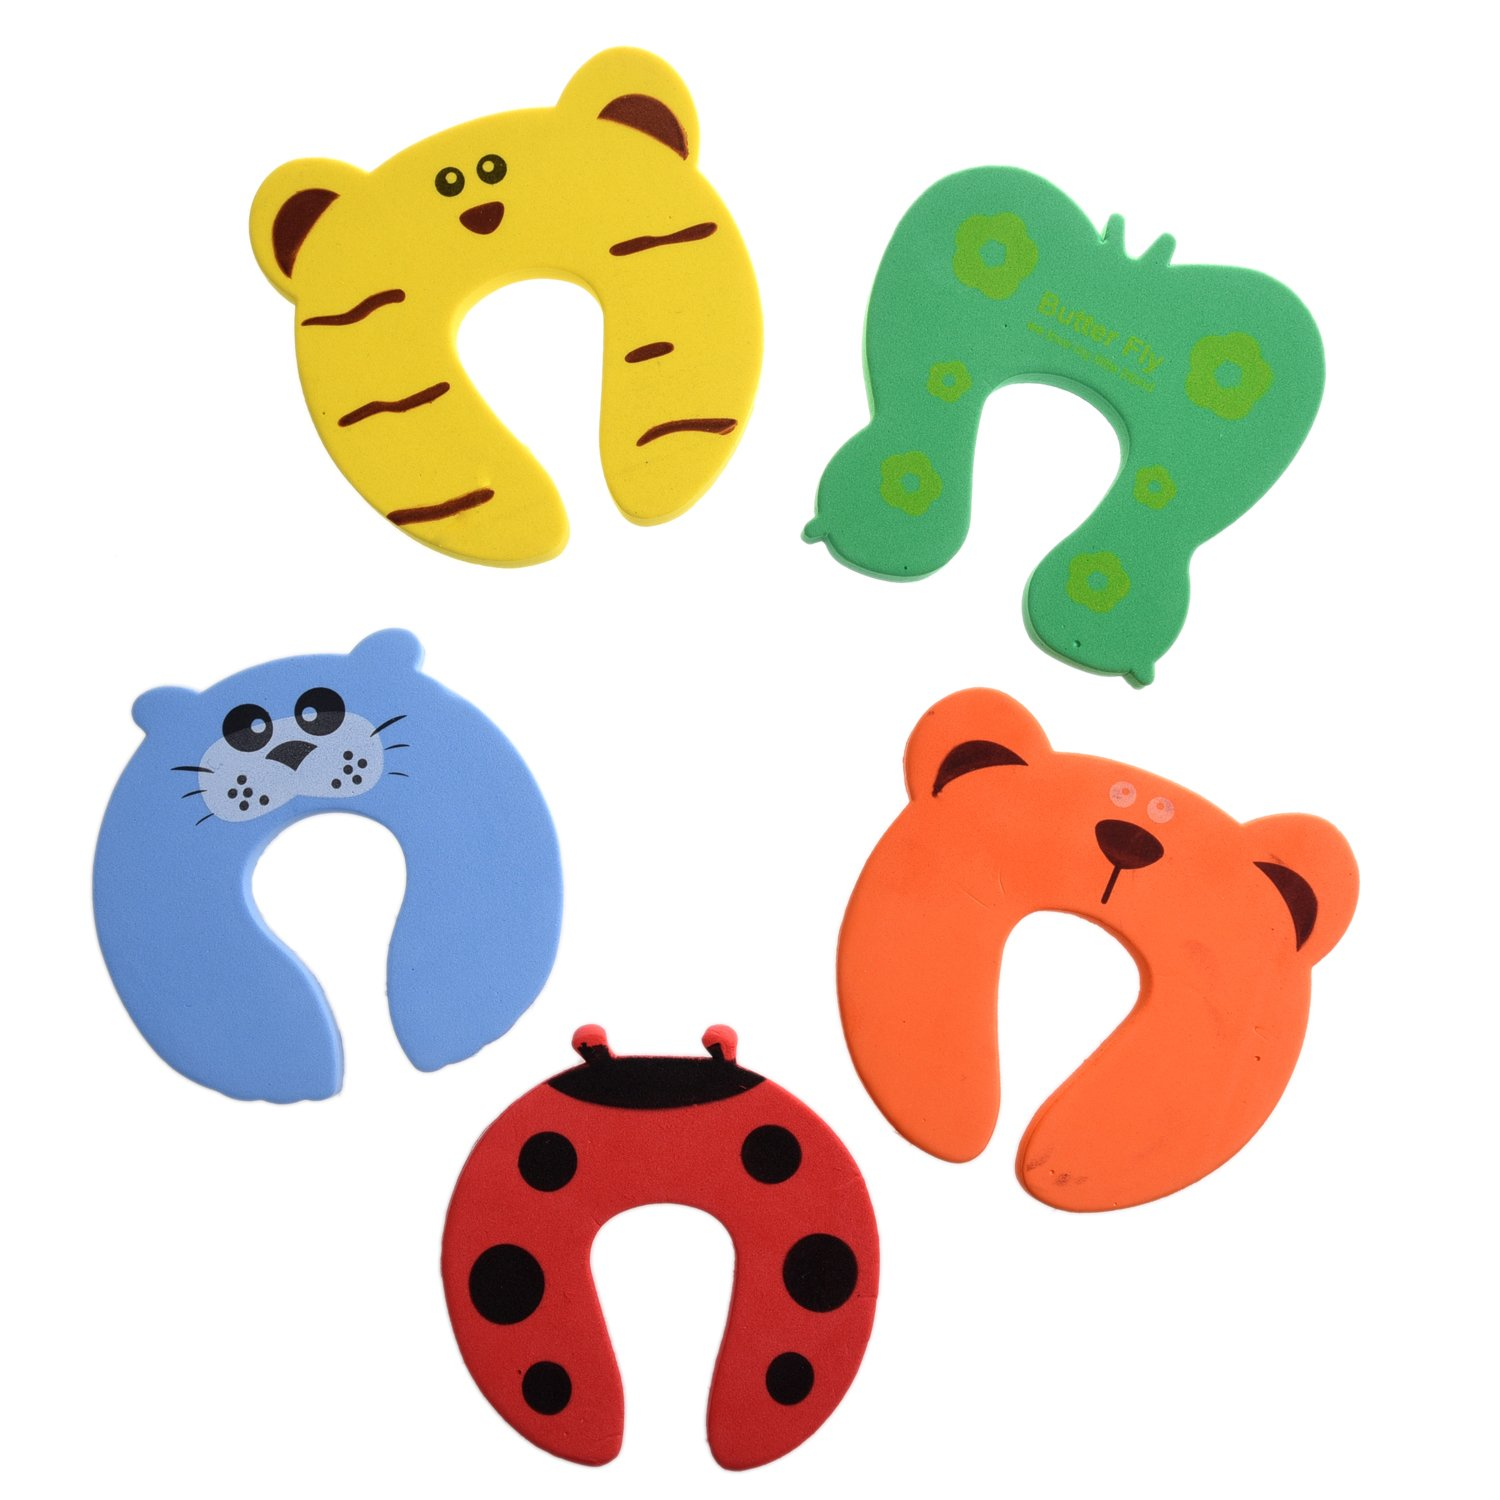 SODIAL(R) 5x Baby Kids Door Jammer Finger Pinch Guard Child Toddler Infant Safety Protector Stopper Cute Animal Designs